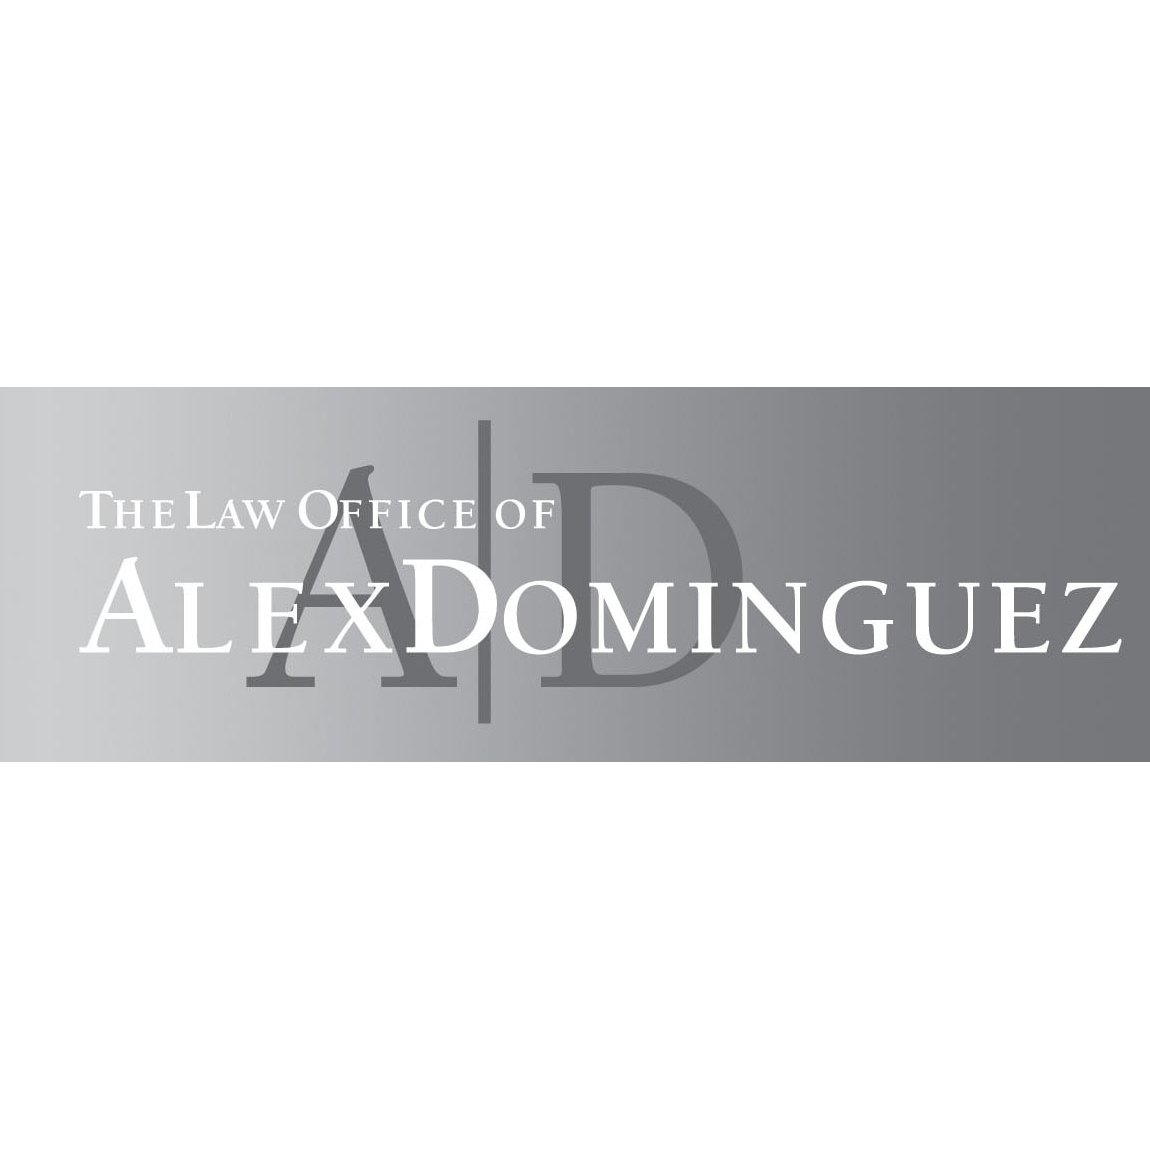 The Law Office of Alex Dominguez